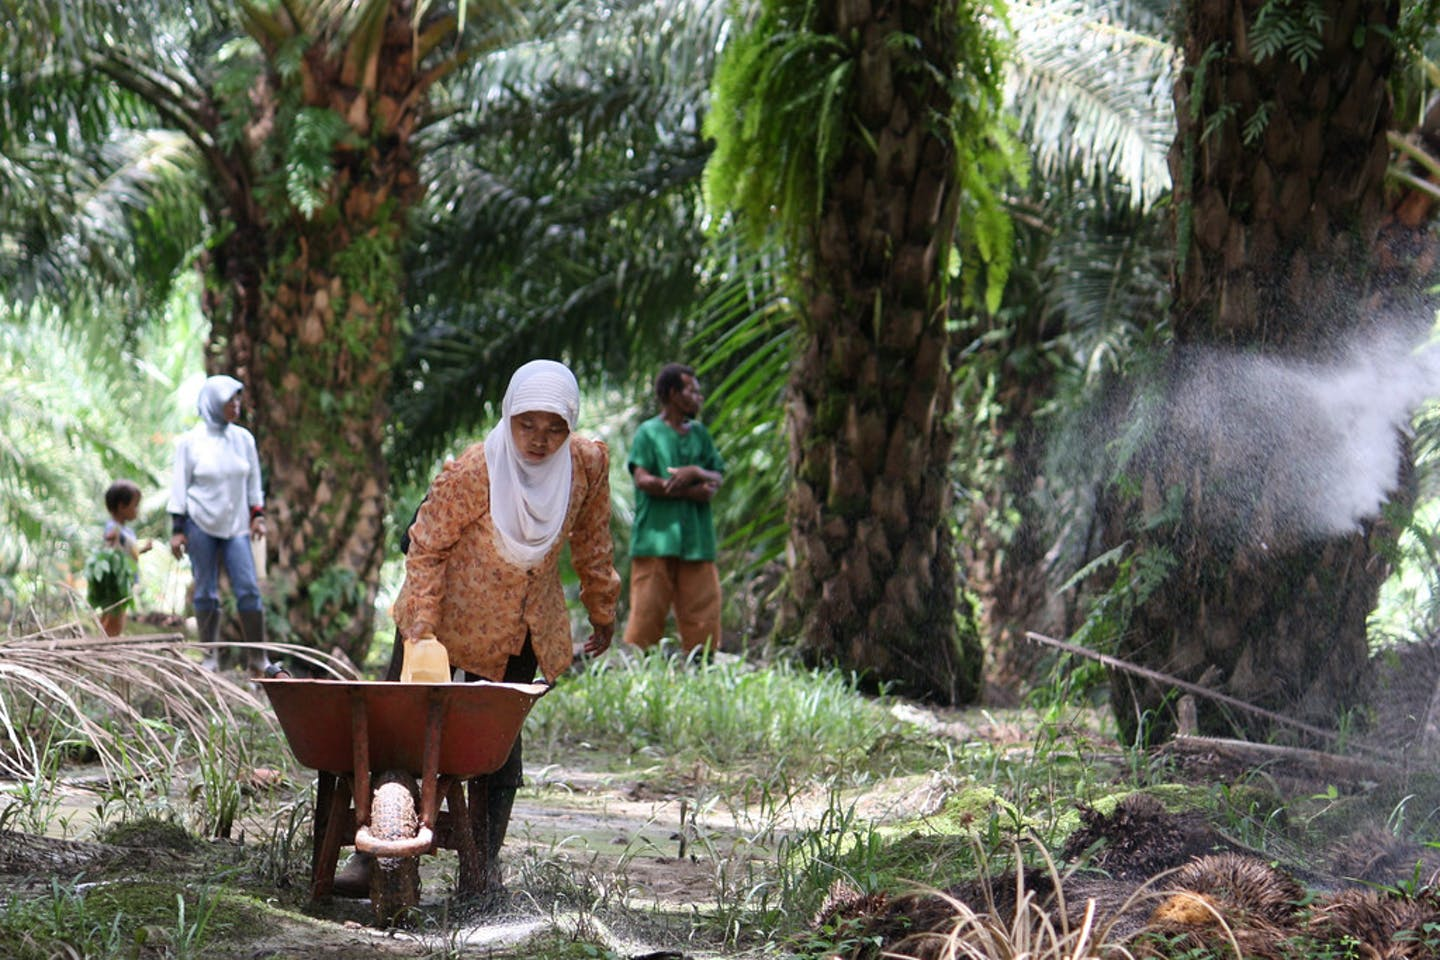 Workers fertilising on an oil palm plantation in Papua, Indonesia